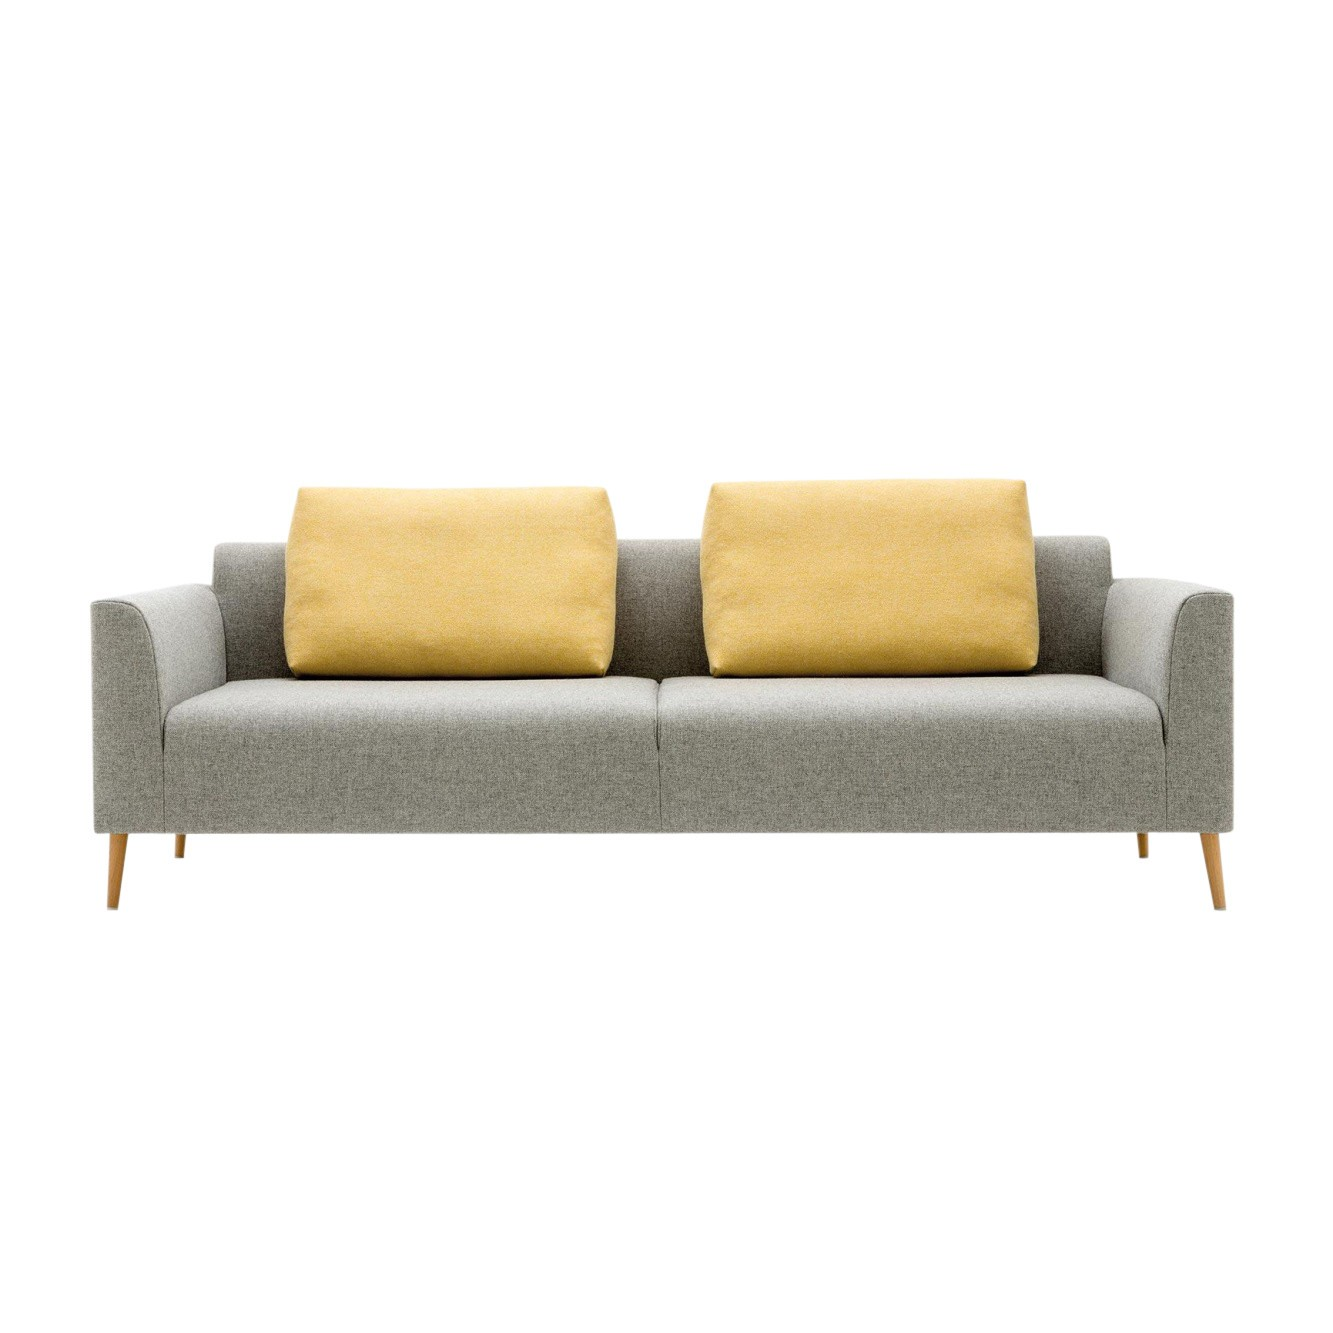 Rolf Benz Sofa Freistil Freistil 162 3 Seater Sofa